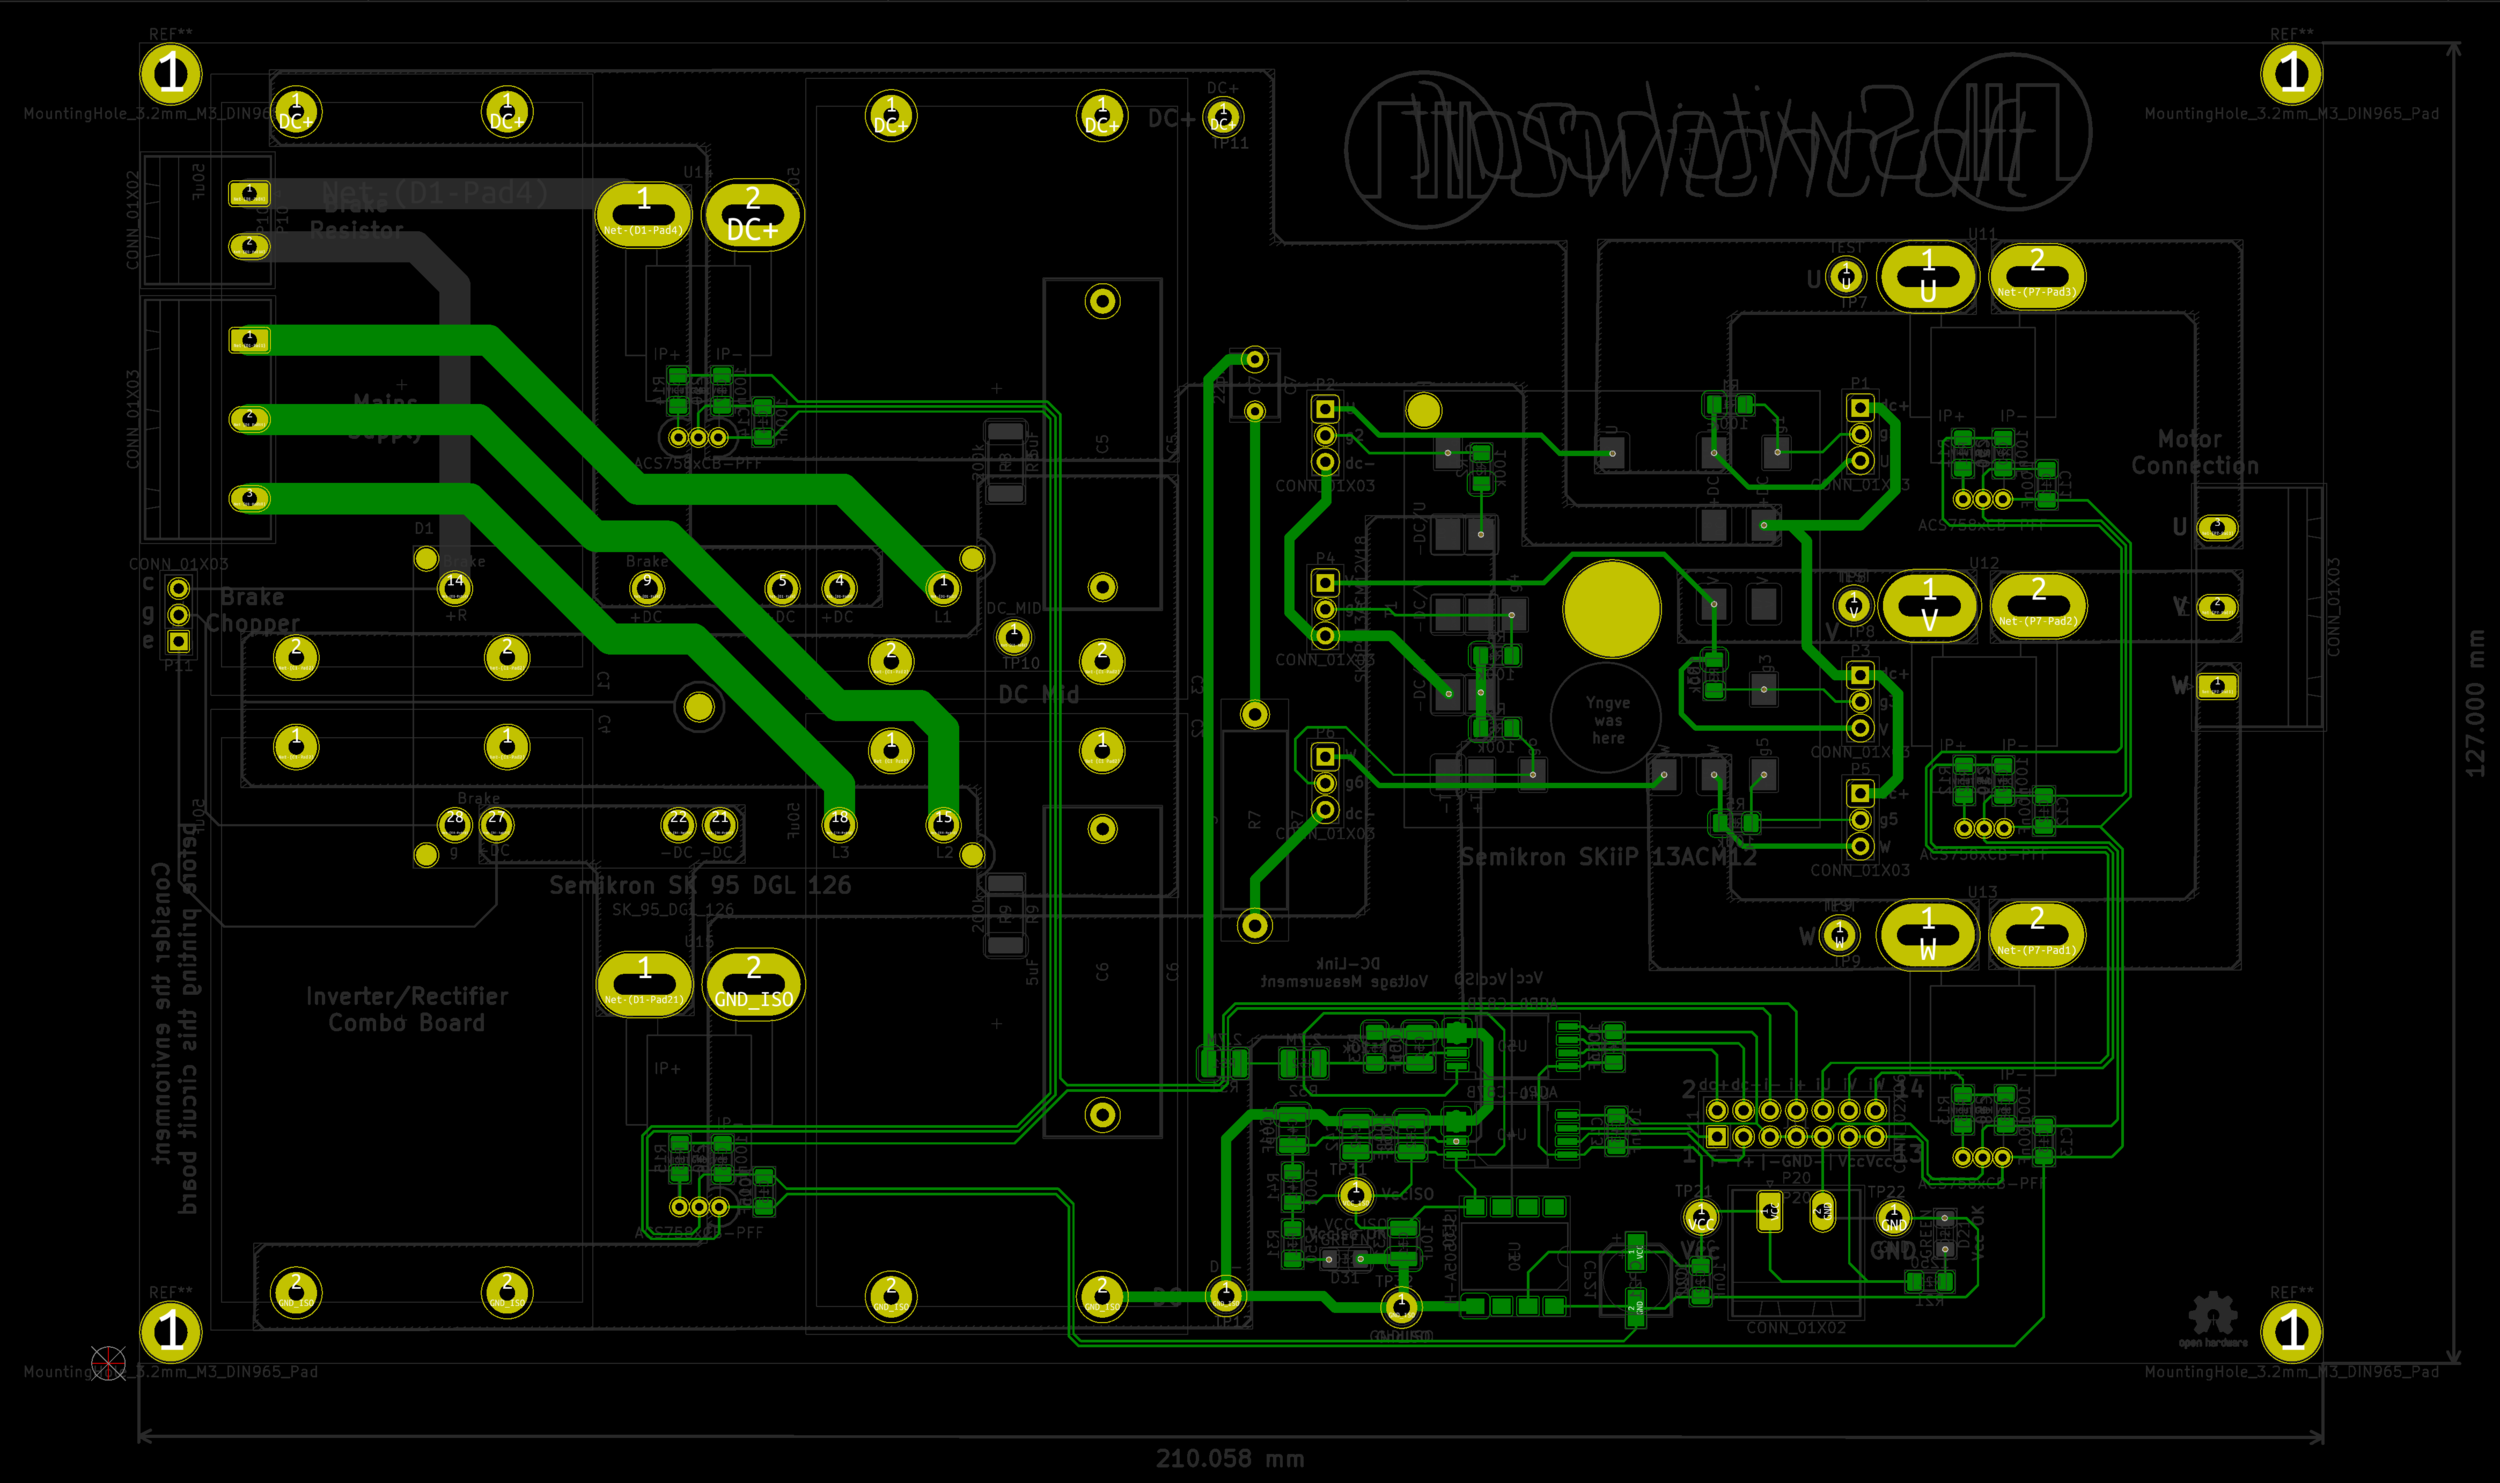 This view highlight the connections on the bottom side. Mostly control circuitry, but the thick ones in the upper left corner belongs to the main AC supply into the rectifier.